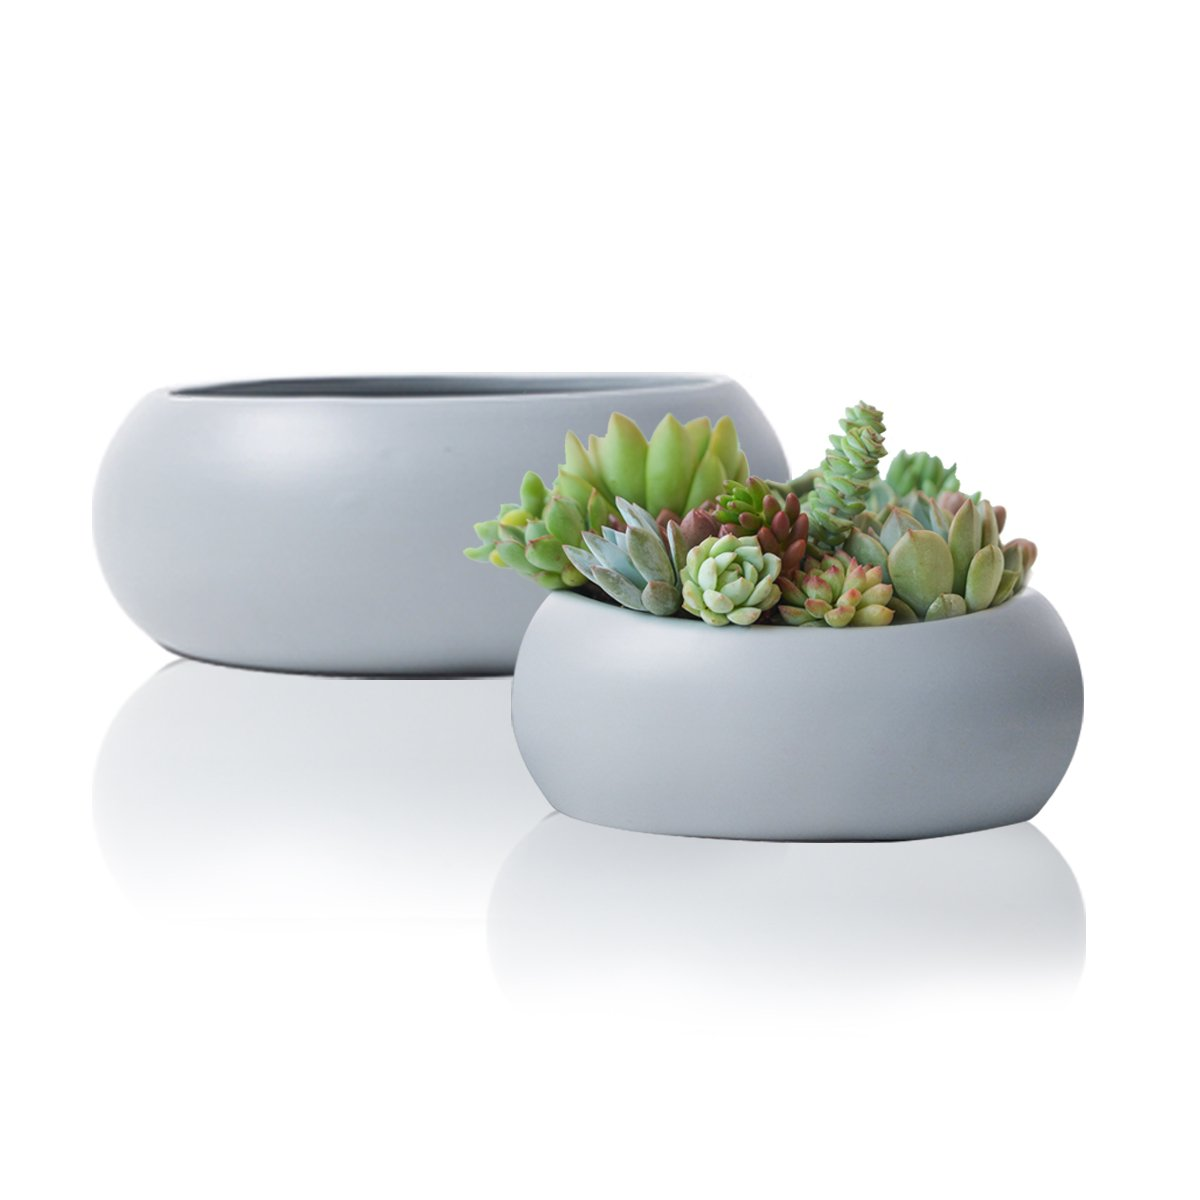 Succulent Pots Planter Set2, Grey Ceramic Cactus Container, 10.6'' Large Garden Indoor Flower Bowl by LA JOLIE MUSE